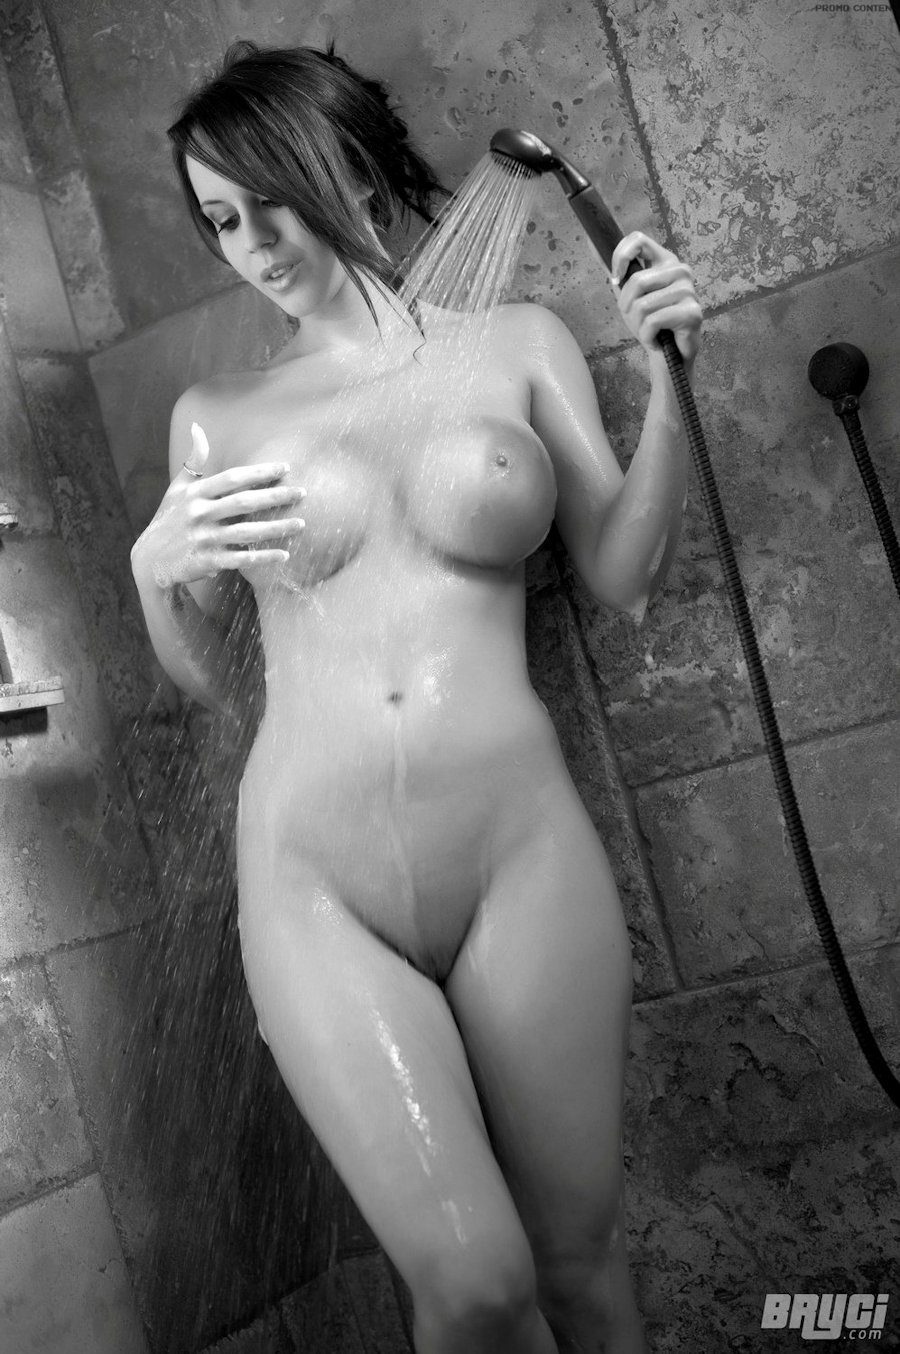 Naked Chicks In The Shower